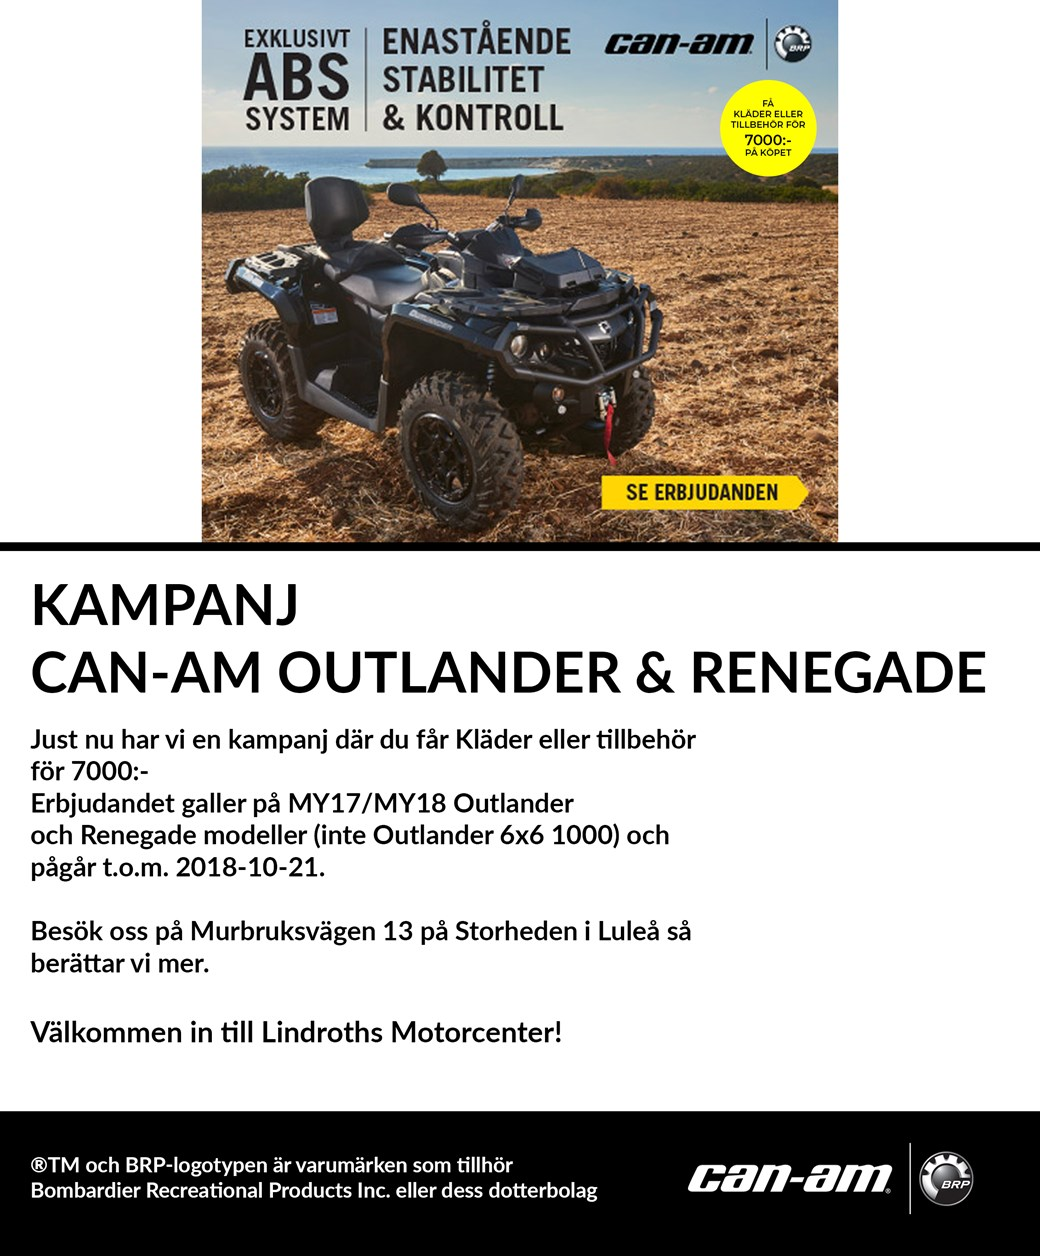 Can-Am Enastående Stabilitet & Kontroll